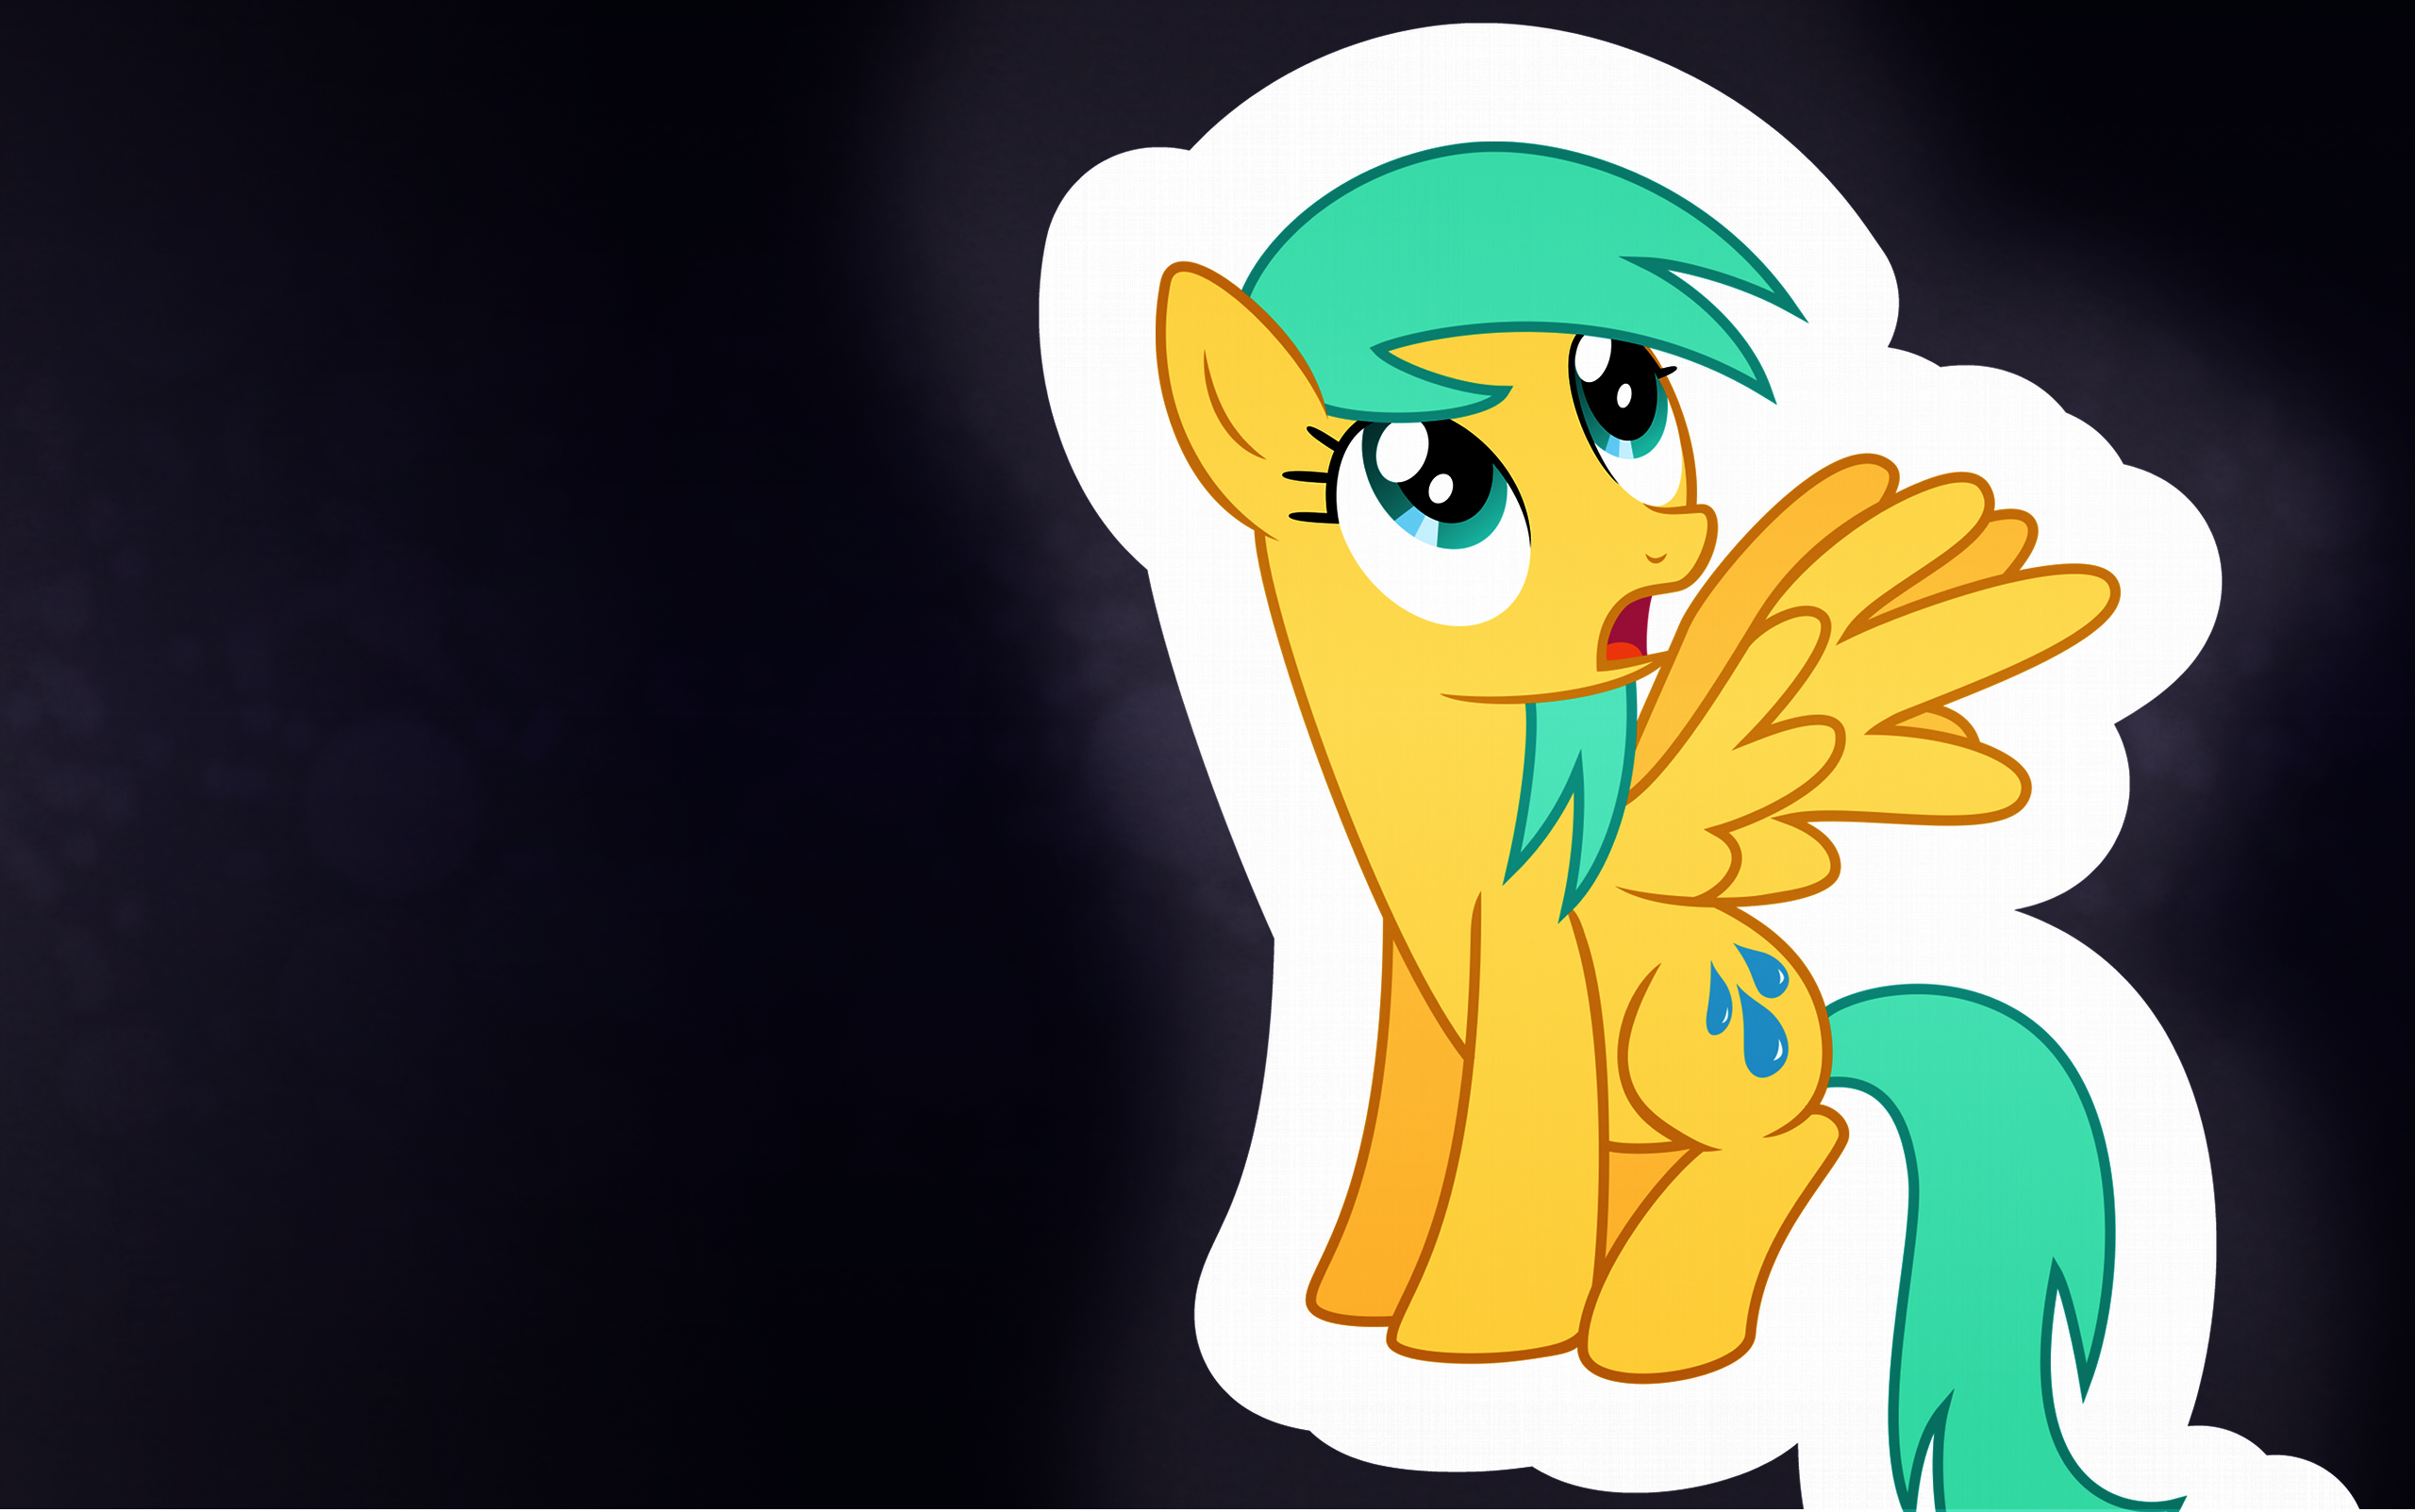 Raindrops wallpaper by SharkMachine and SilverRainclouds